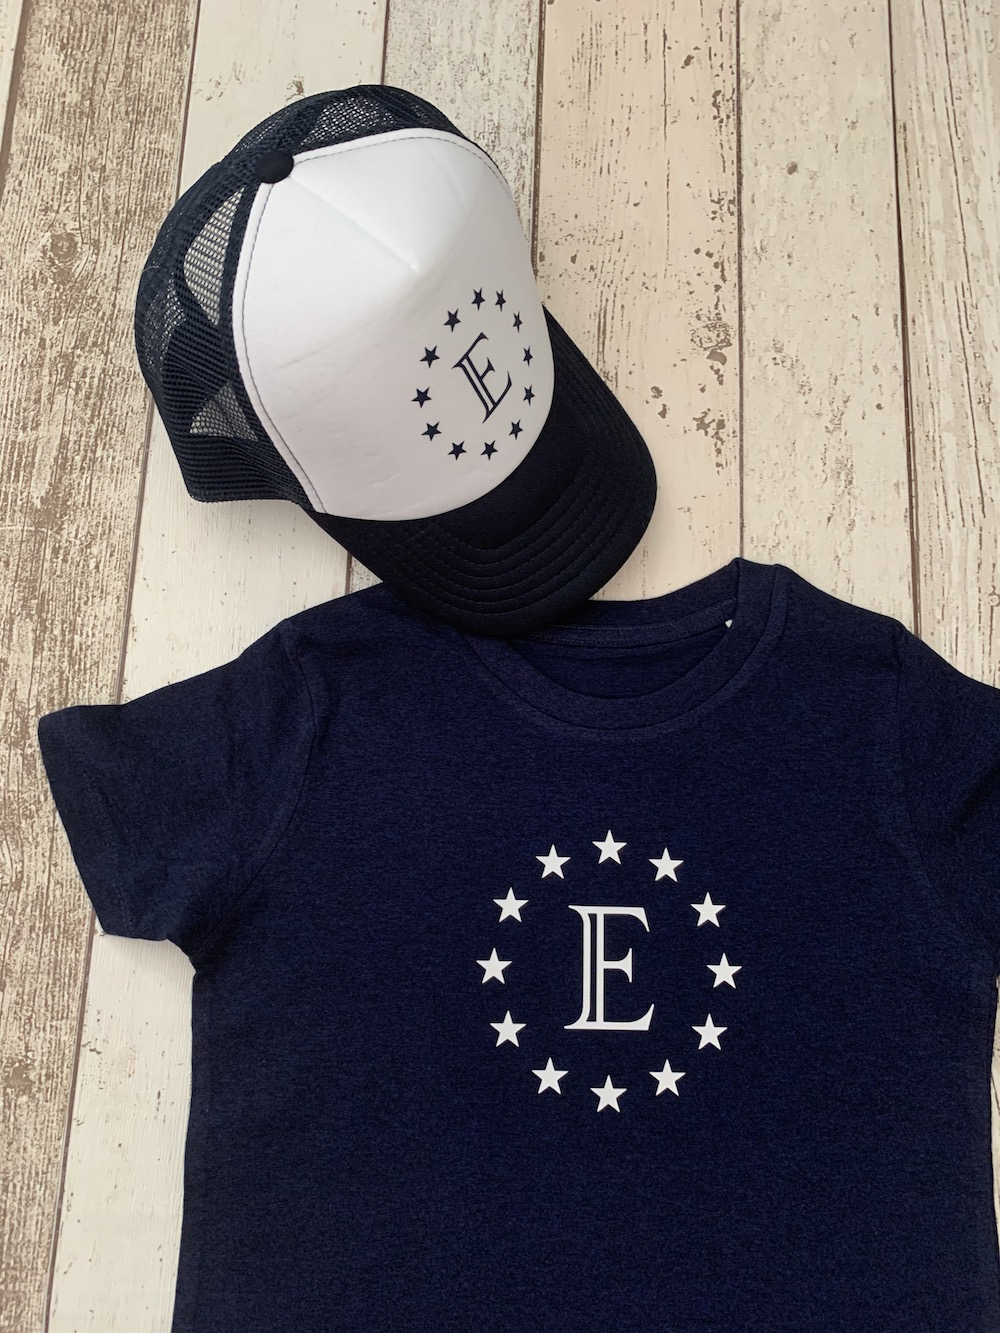 Stars Personalised Tshirt And Cap Set – Navy